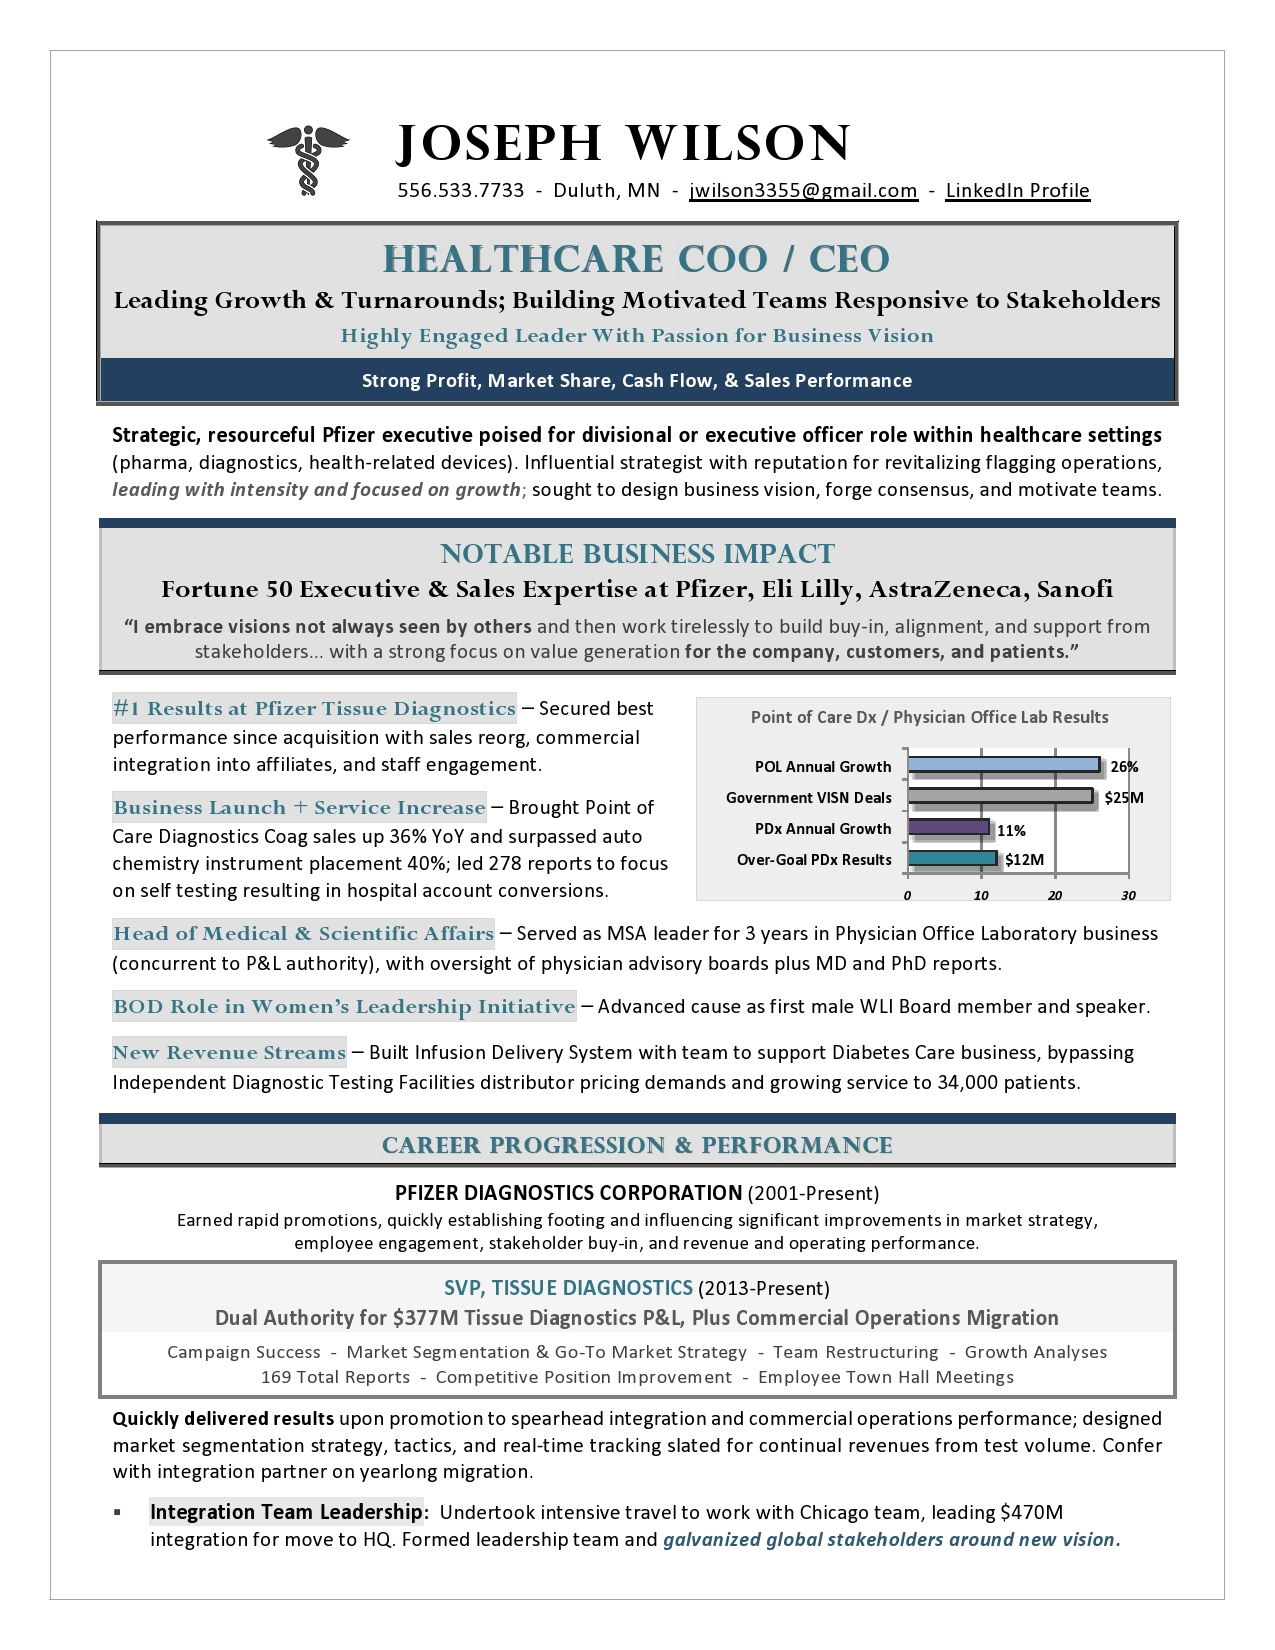 award  coo healthcare resume  best healthcare resume